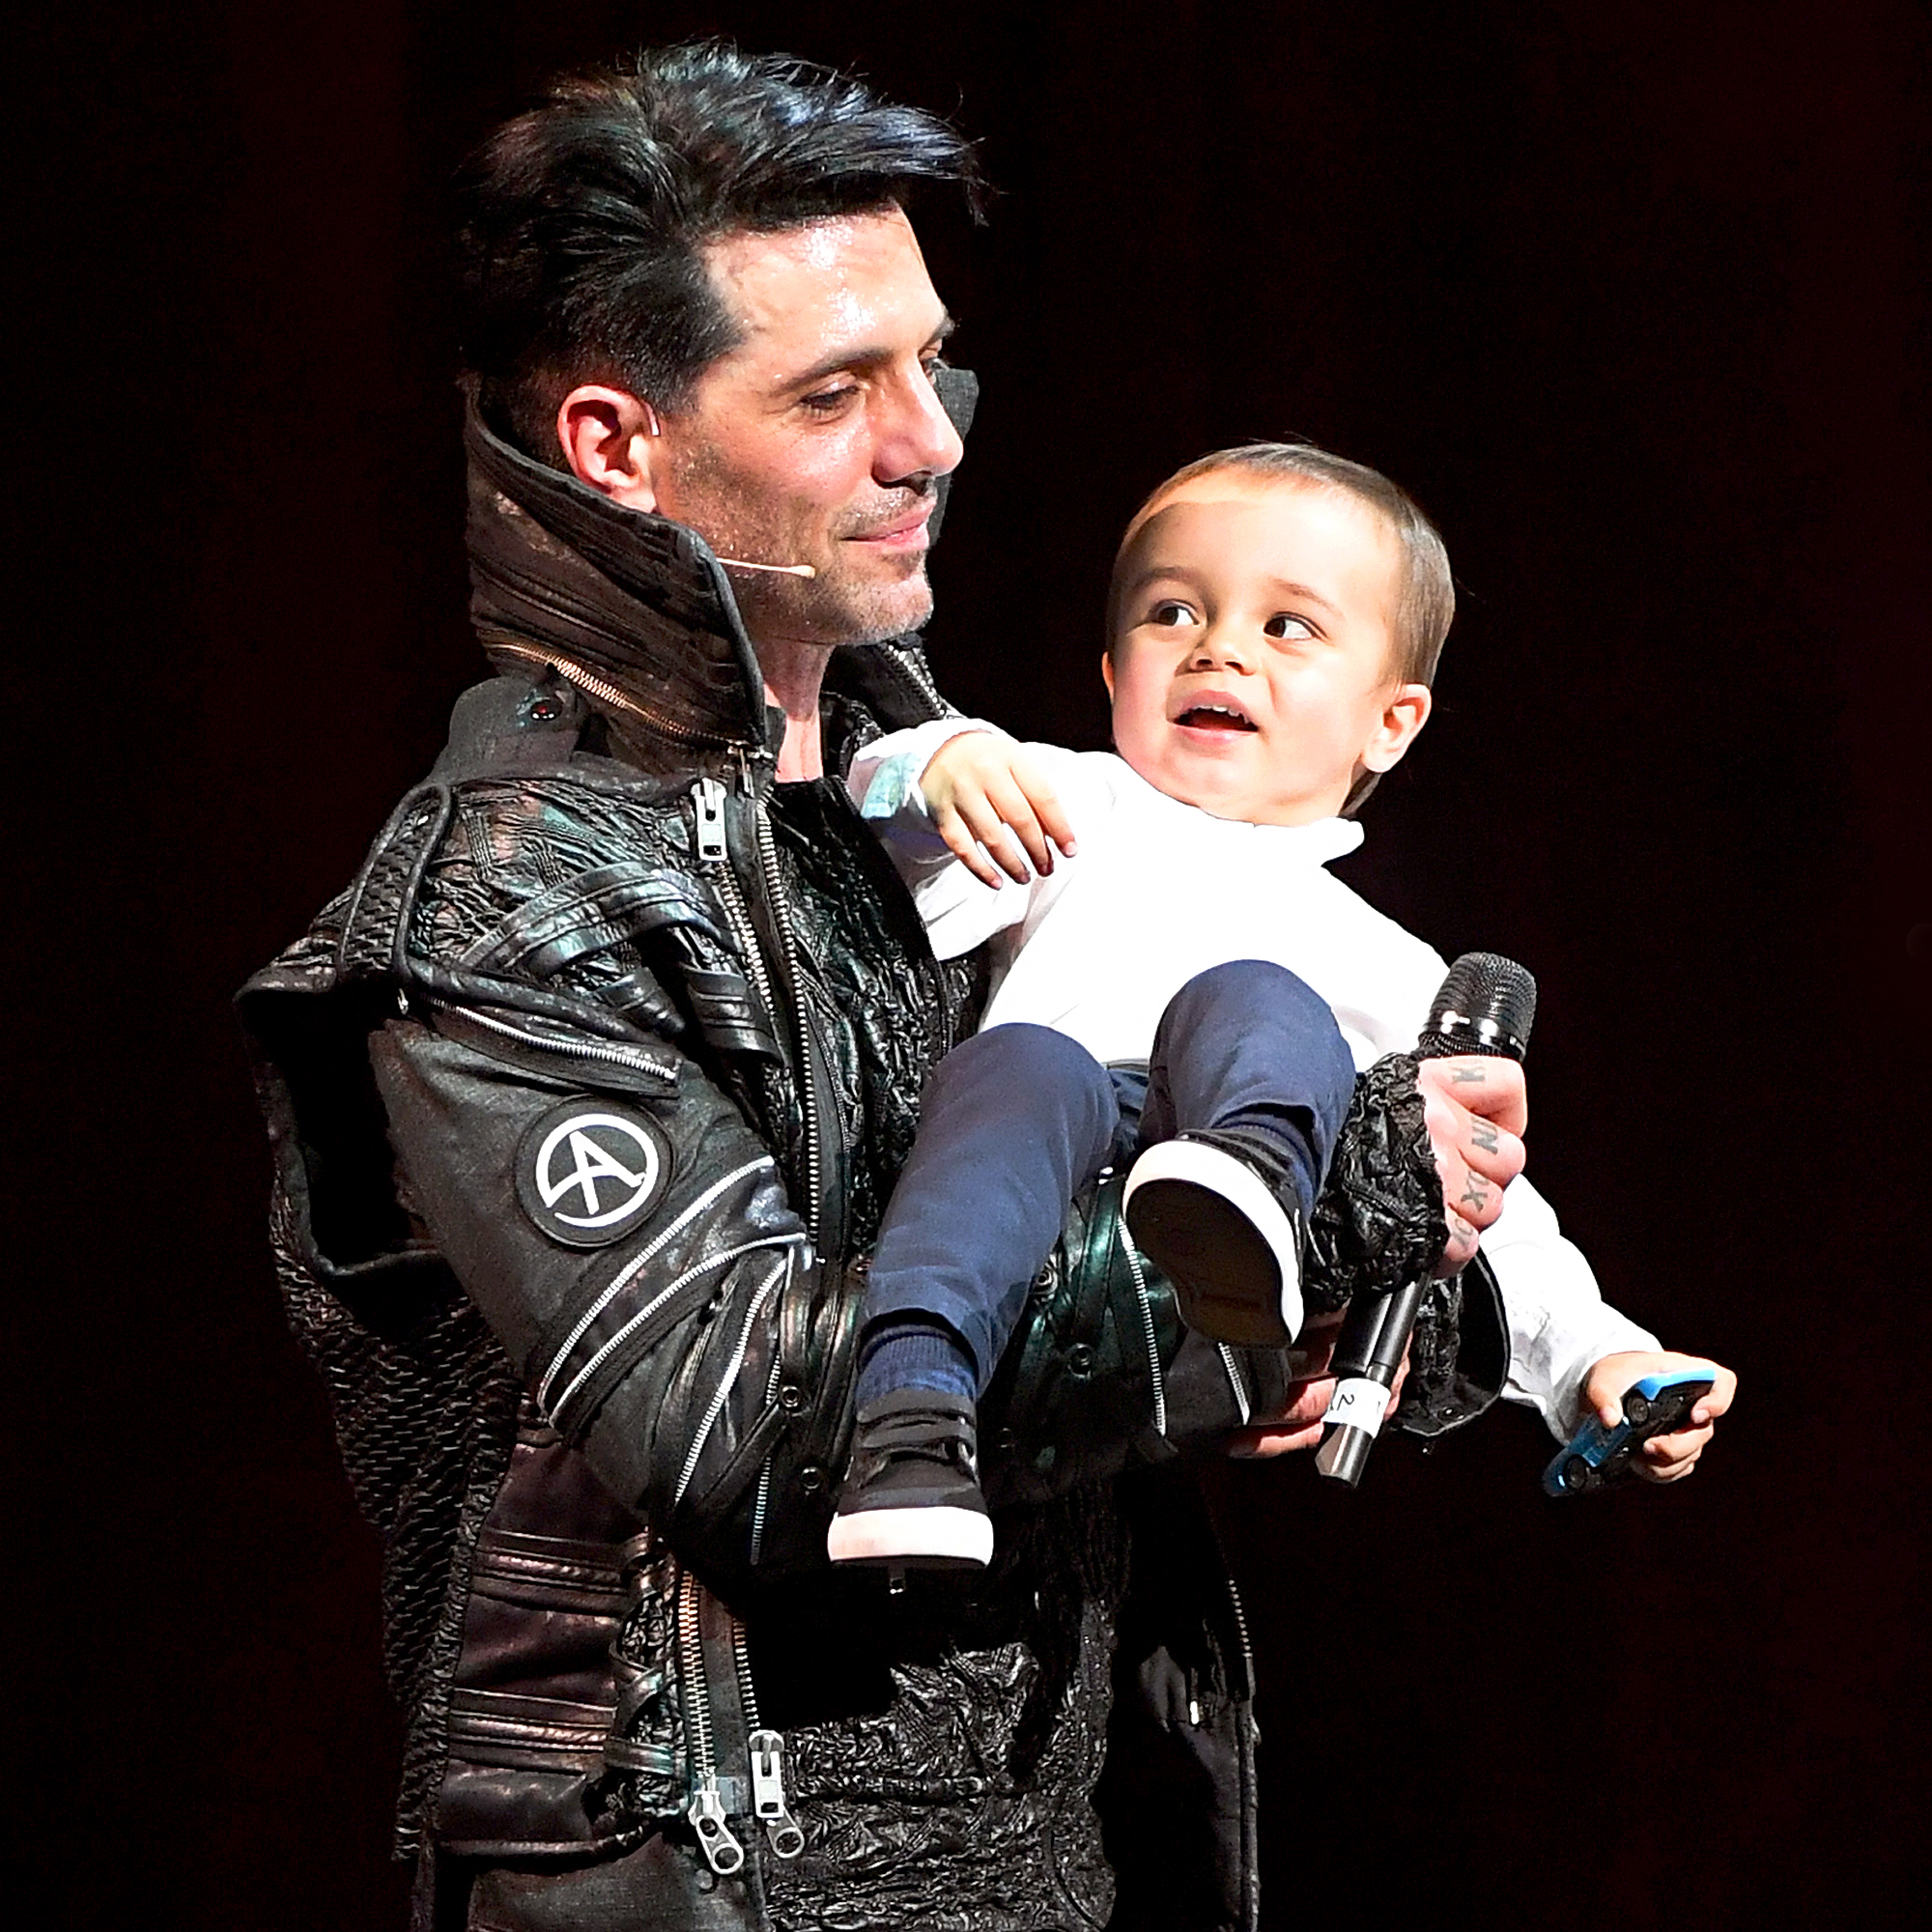 criss angel i wish that i could take my son s cancer